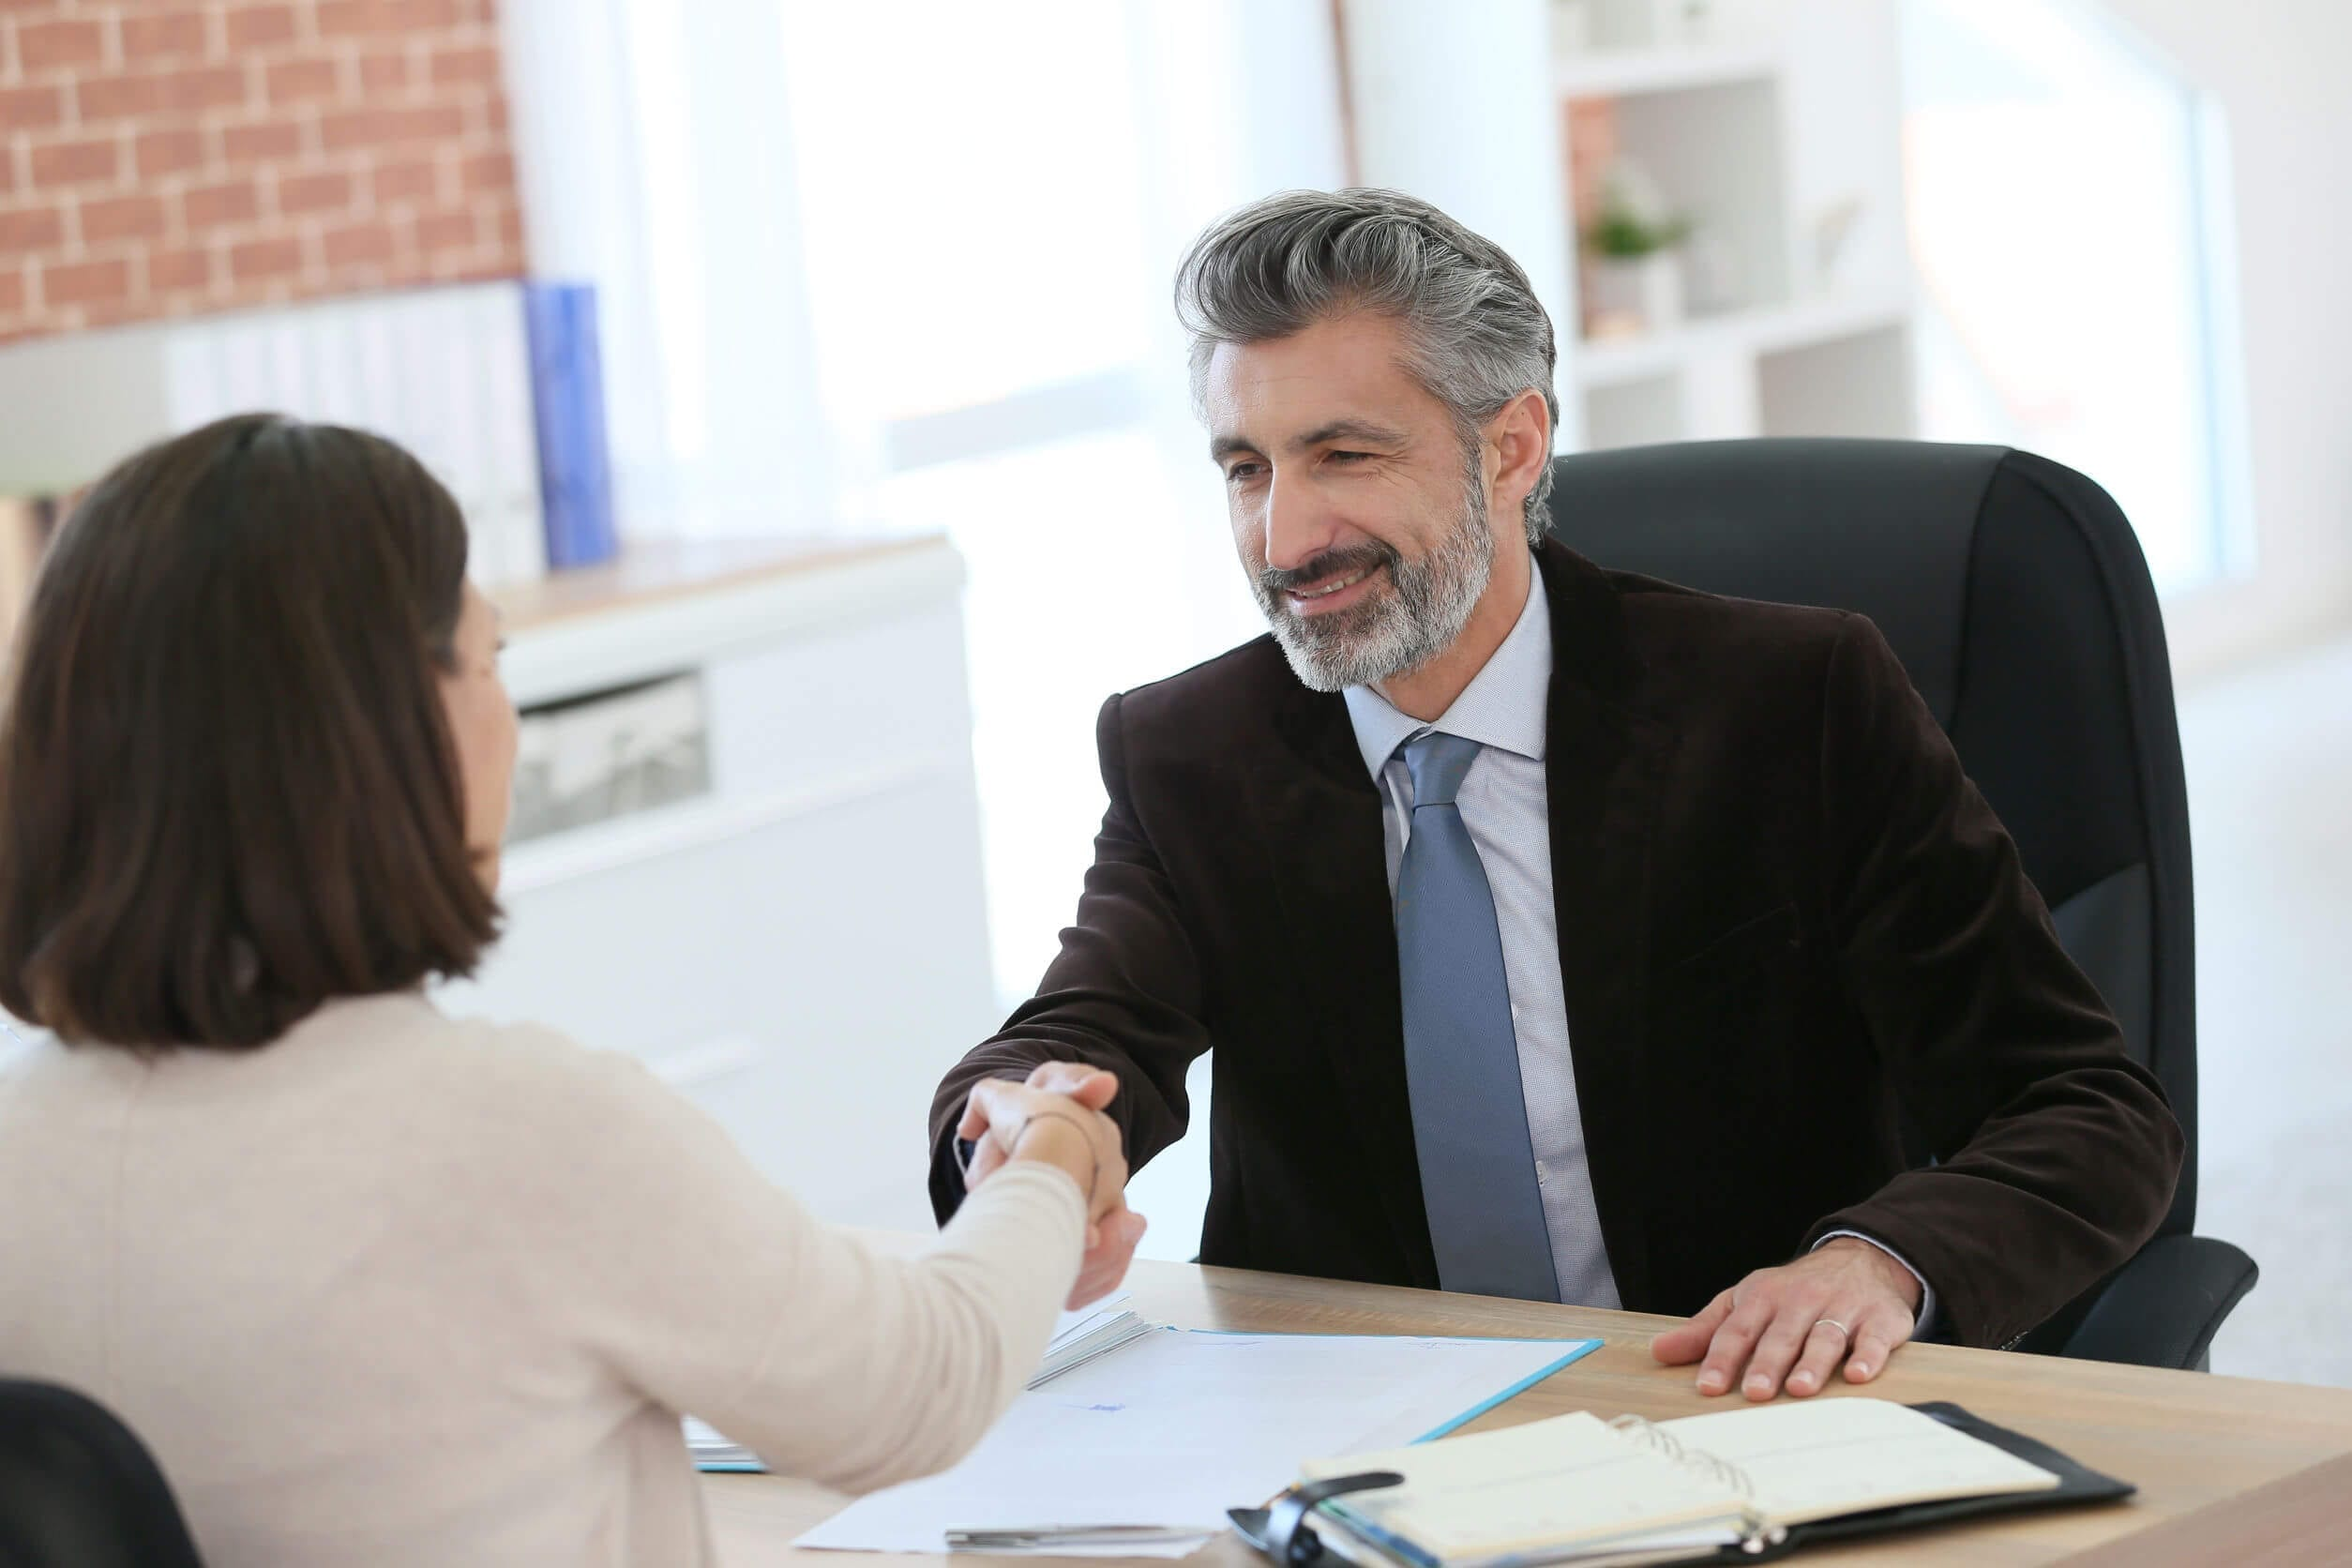 Get Help from an Experienced Texas Injury Attorney